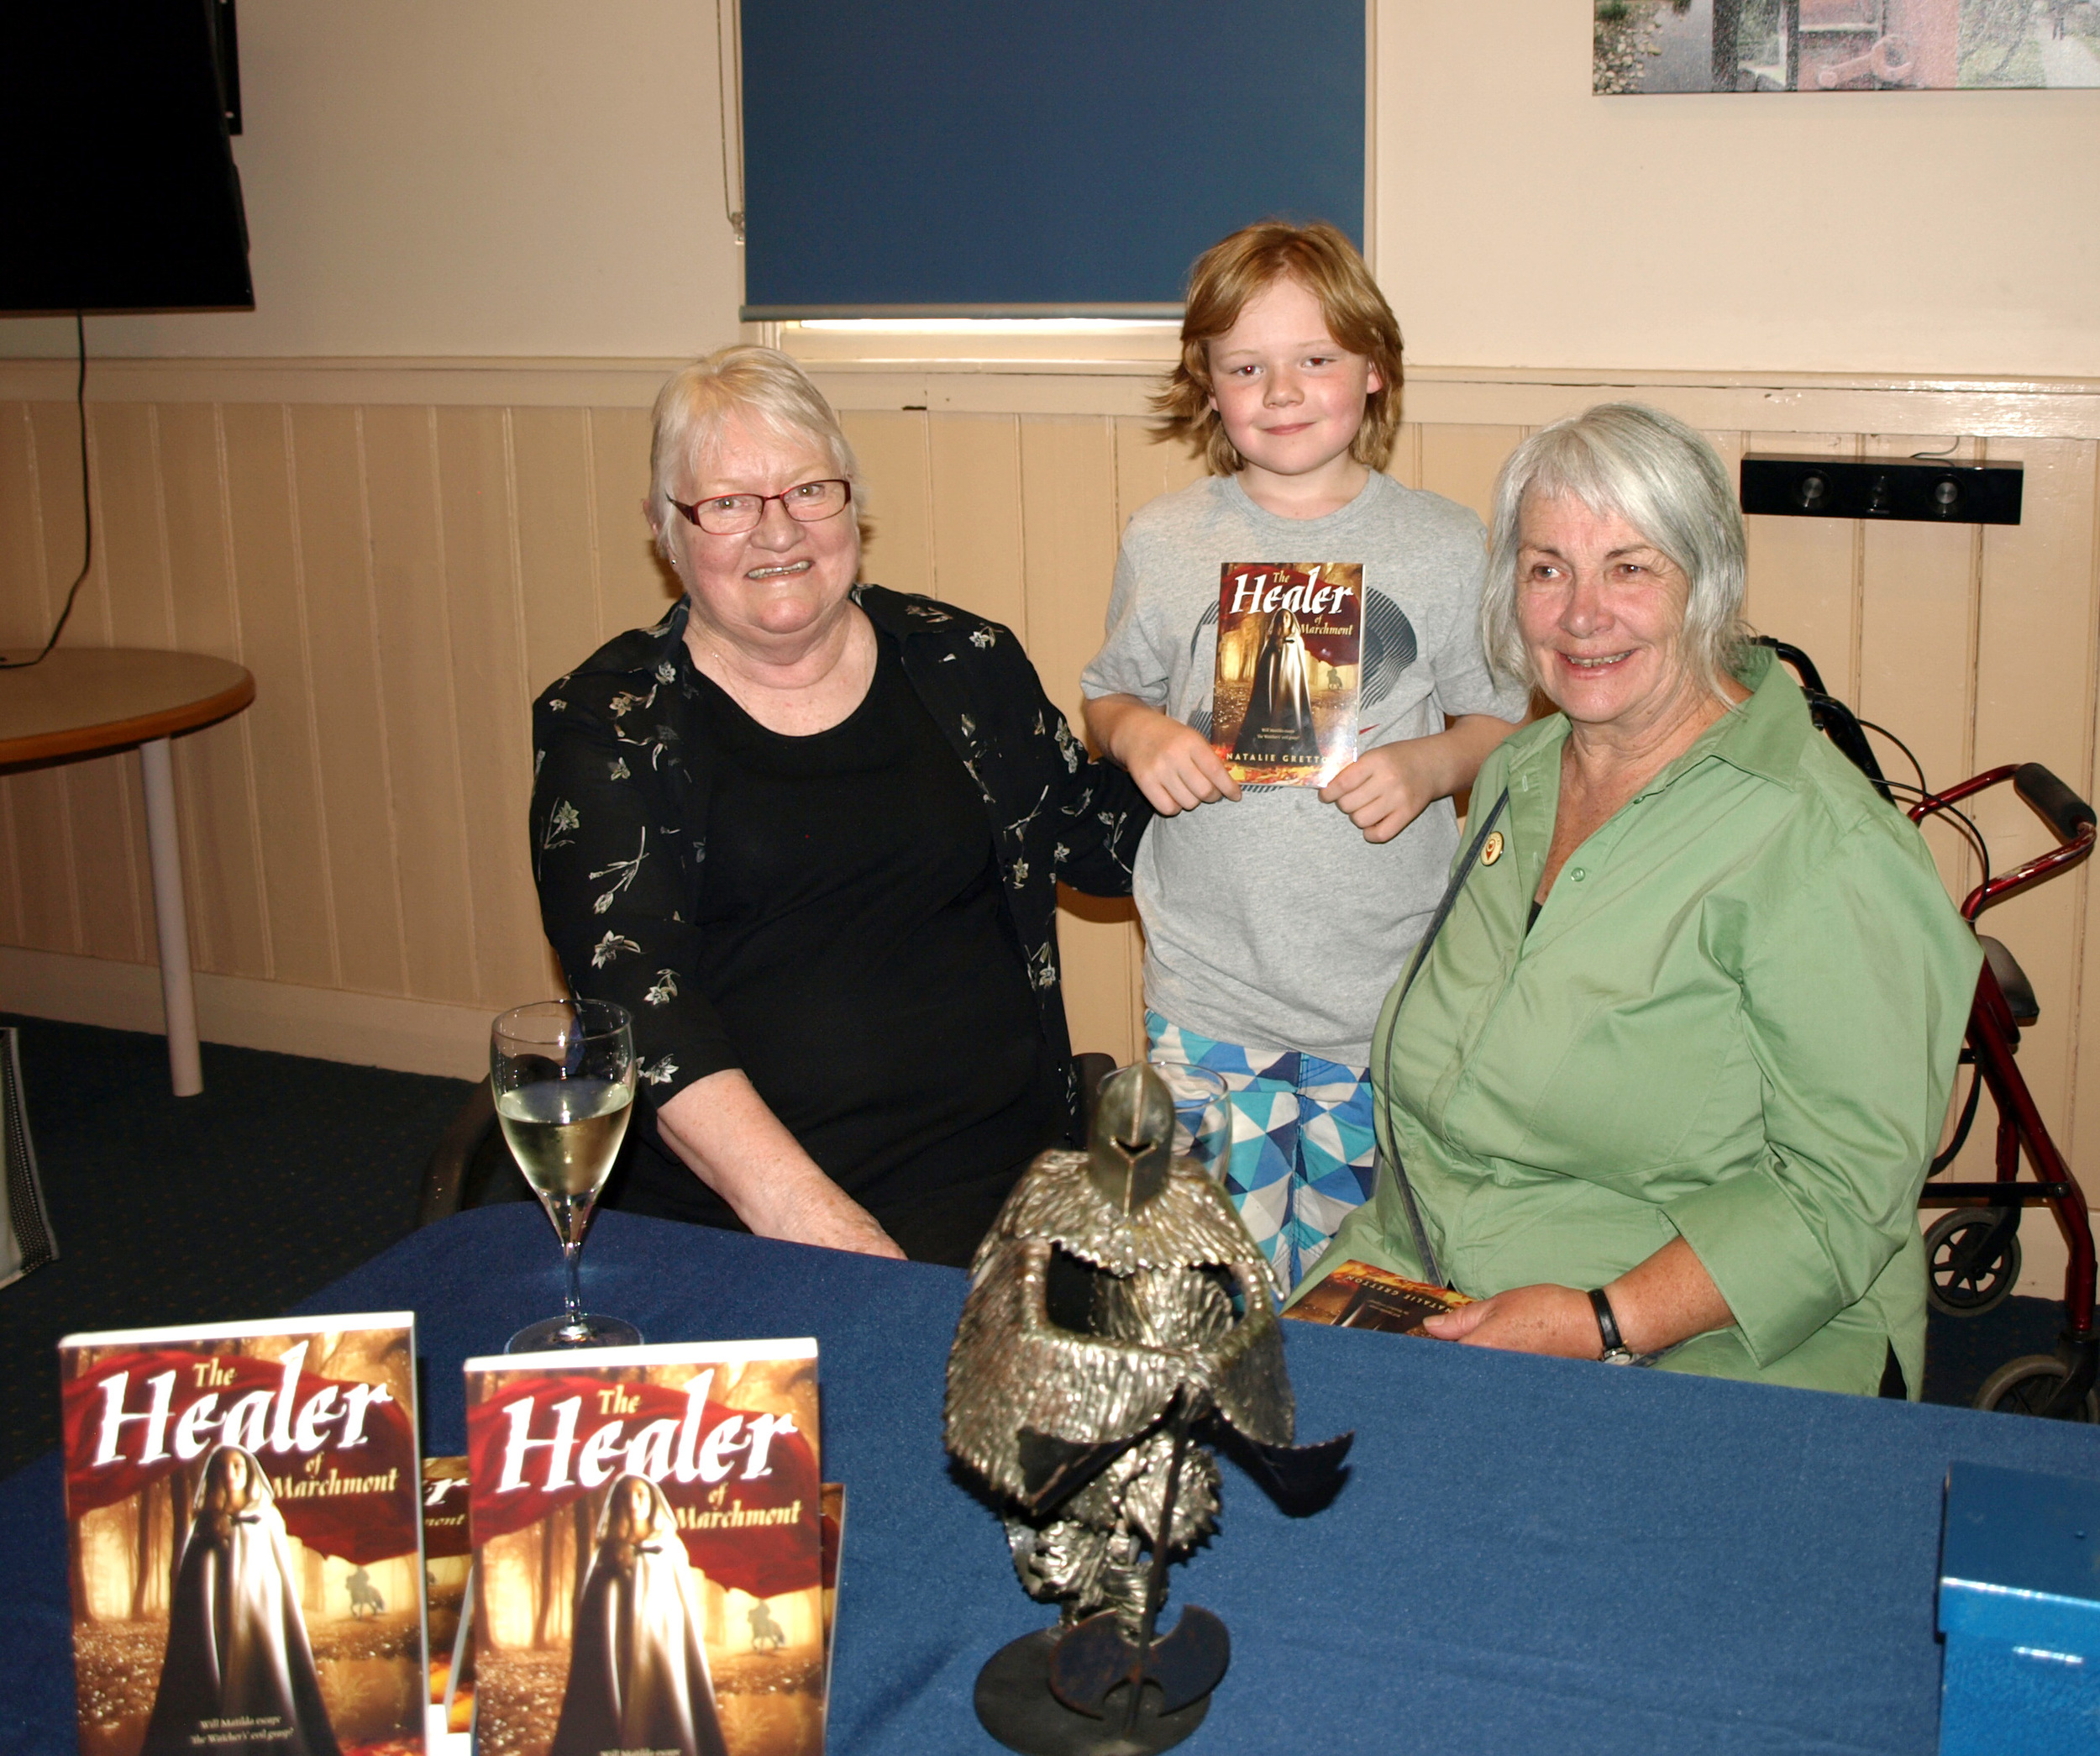 Natalie, Charlie, Diane and The Ghost Warrior who was the inspiration for the story